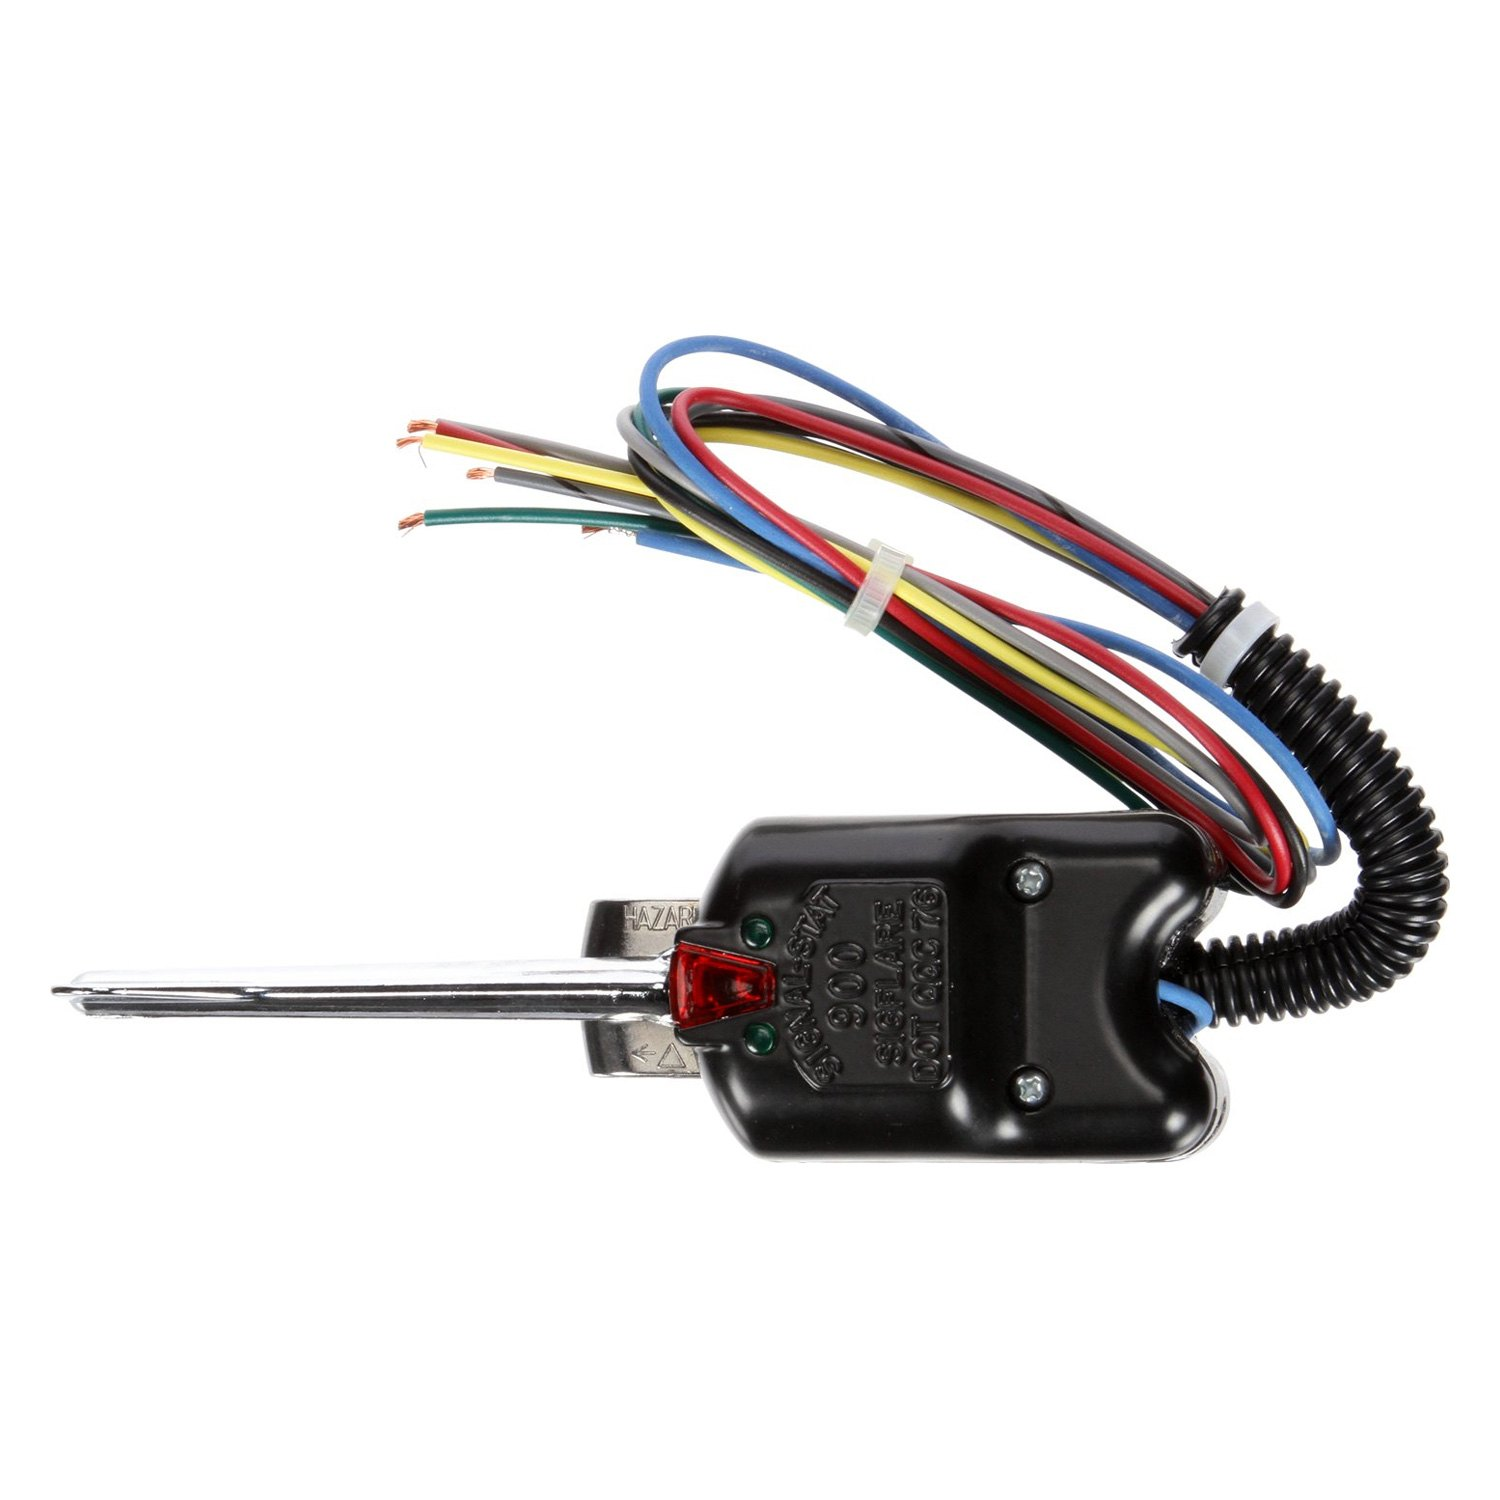 900 3 truck lite� 900 black polycarbonate 7 wire harness turn signal Chevy Truck Wiring Harness at readyjetset.co